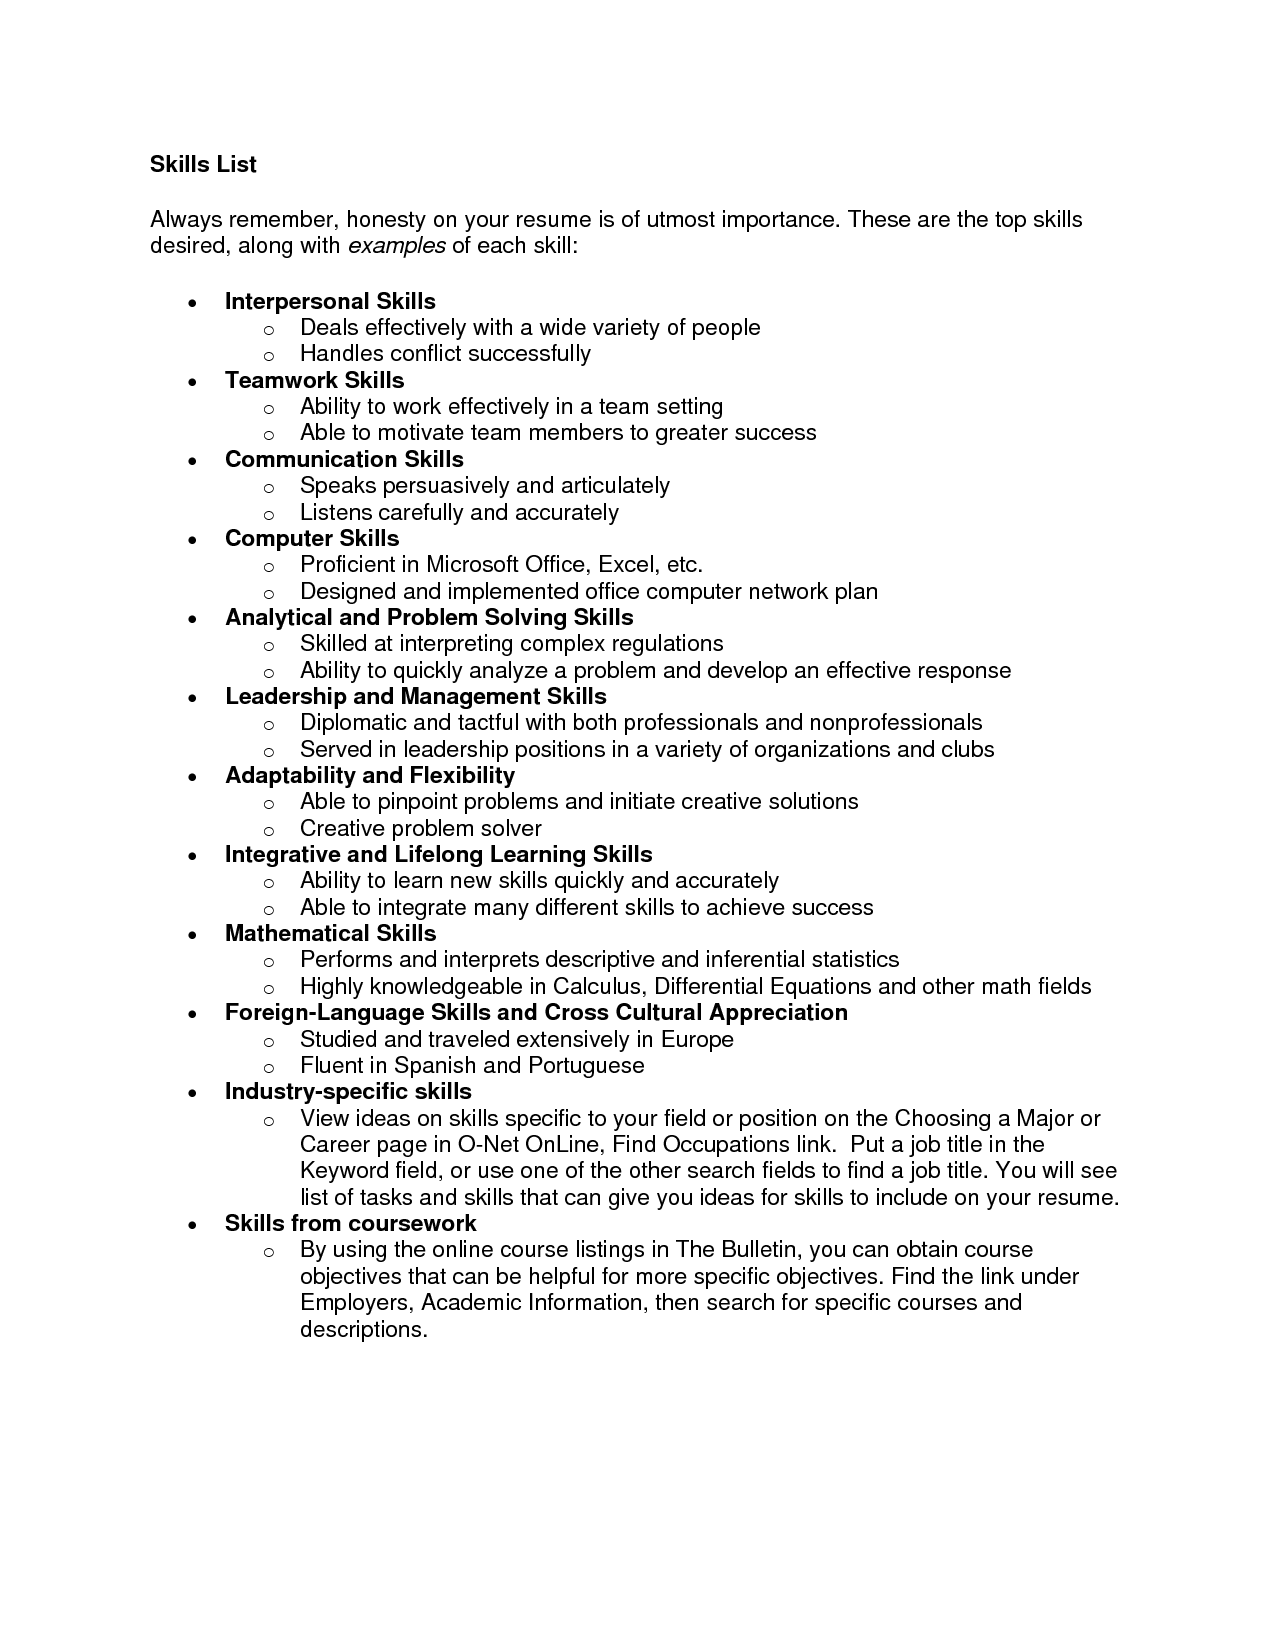 Examples of skills for resume